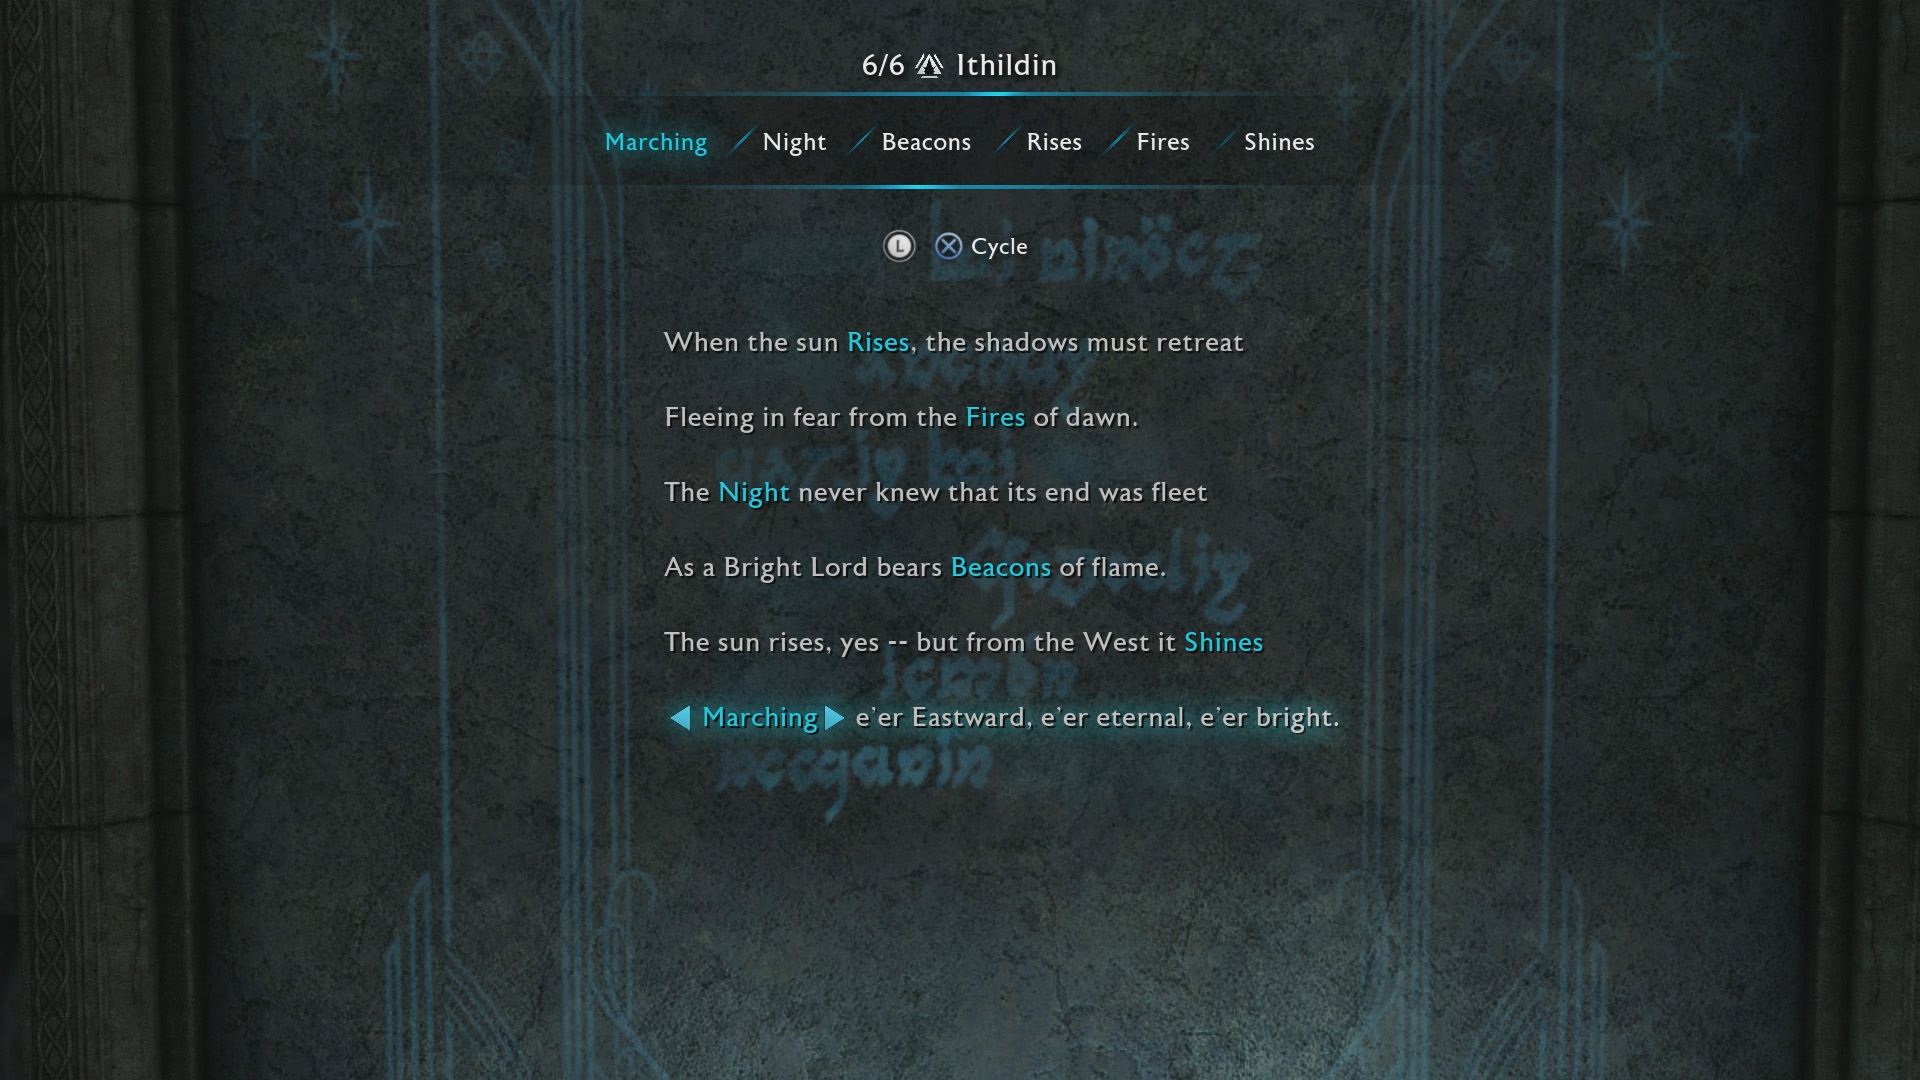 Cirith Ungol Ithildin Door Poem solution Middle-earth Shadow of War